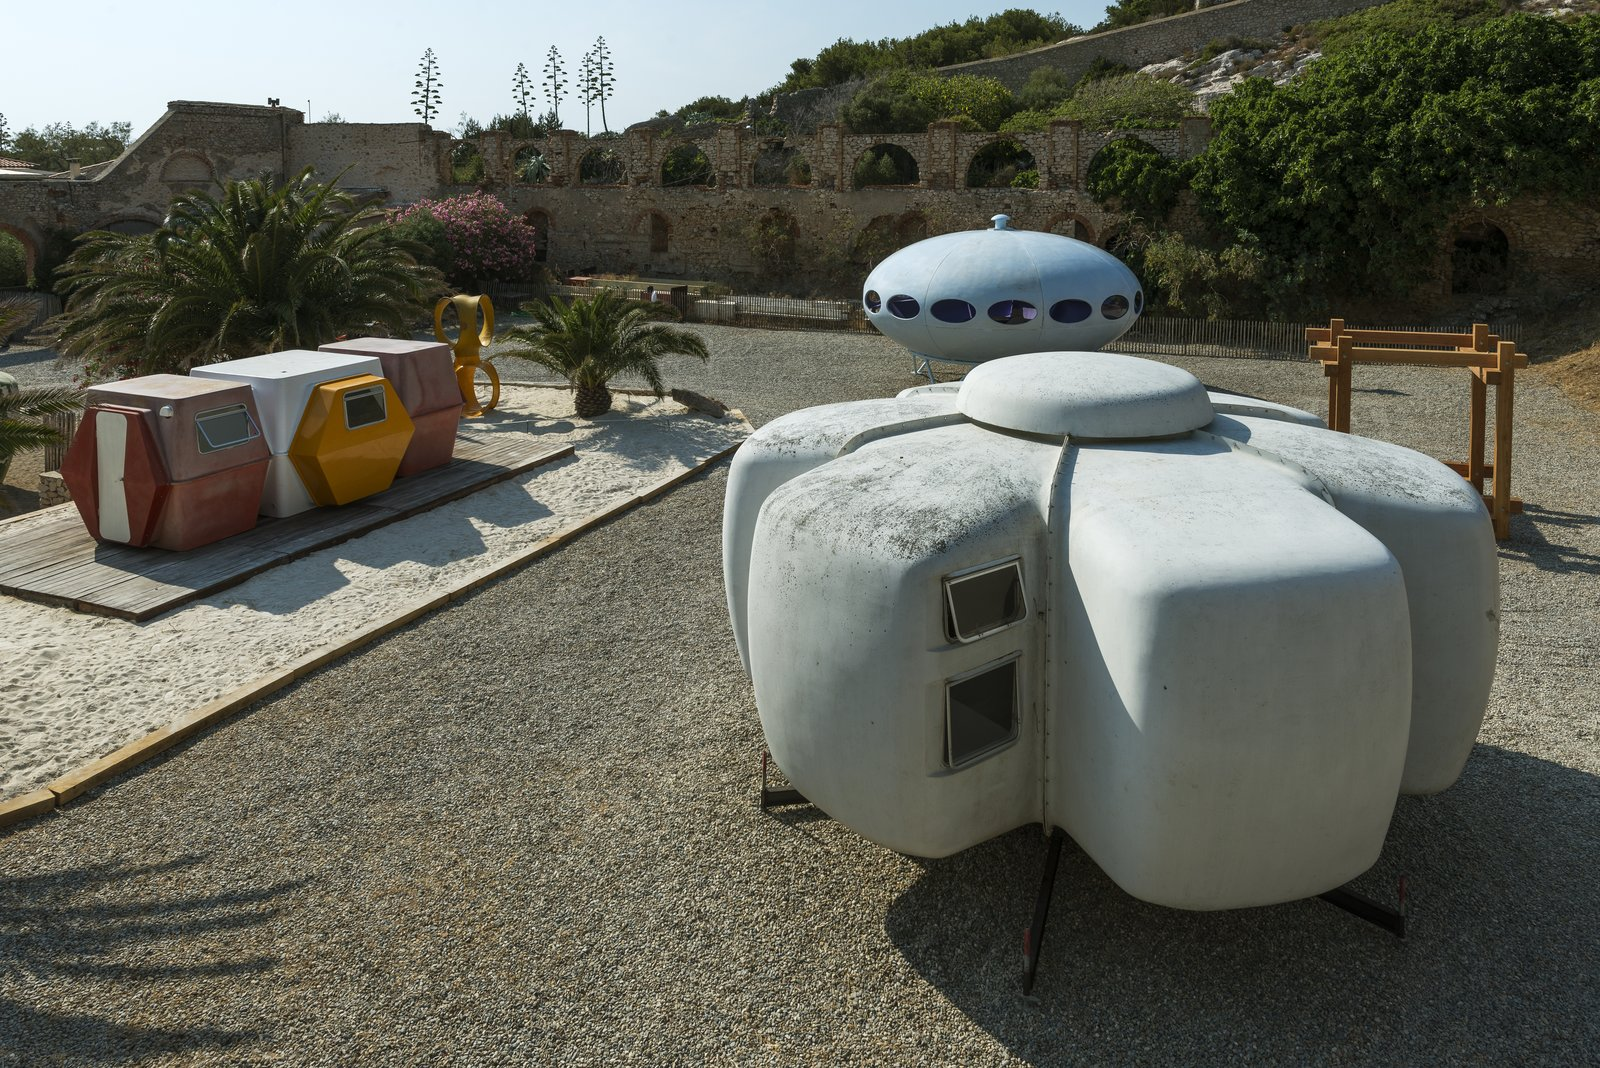 At Utopie Plastic, Futuristic Plastic Homes Make an Appearance at a 19th-Century Metal Factory - Photo 2 of 10